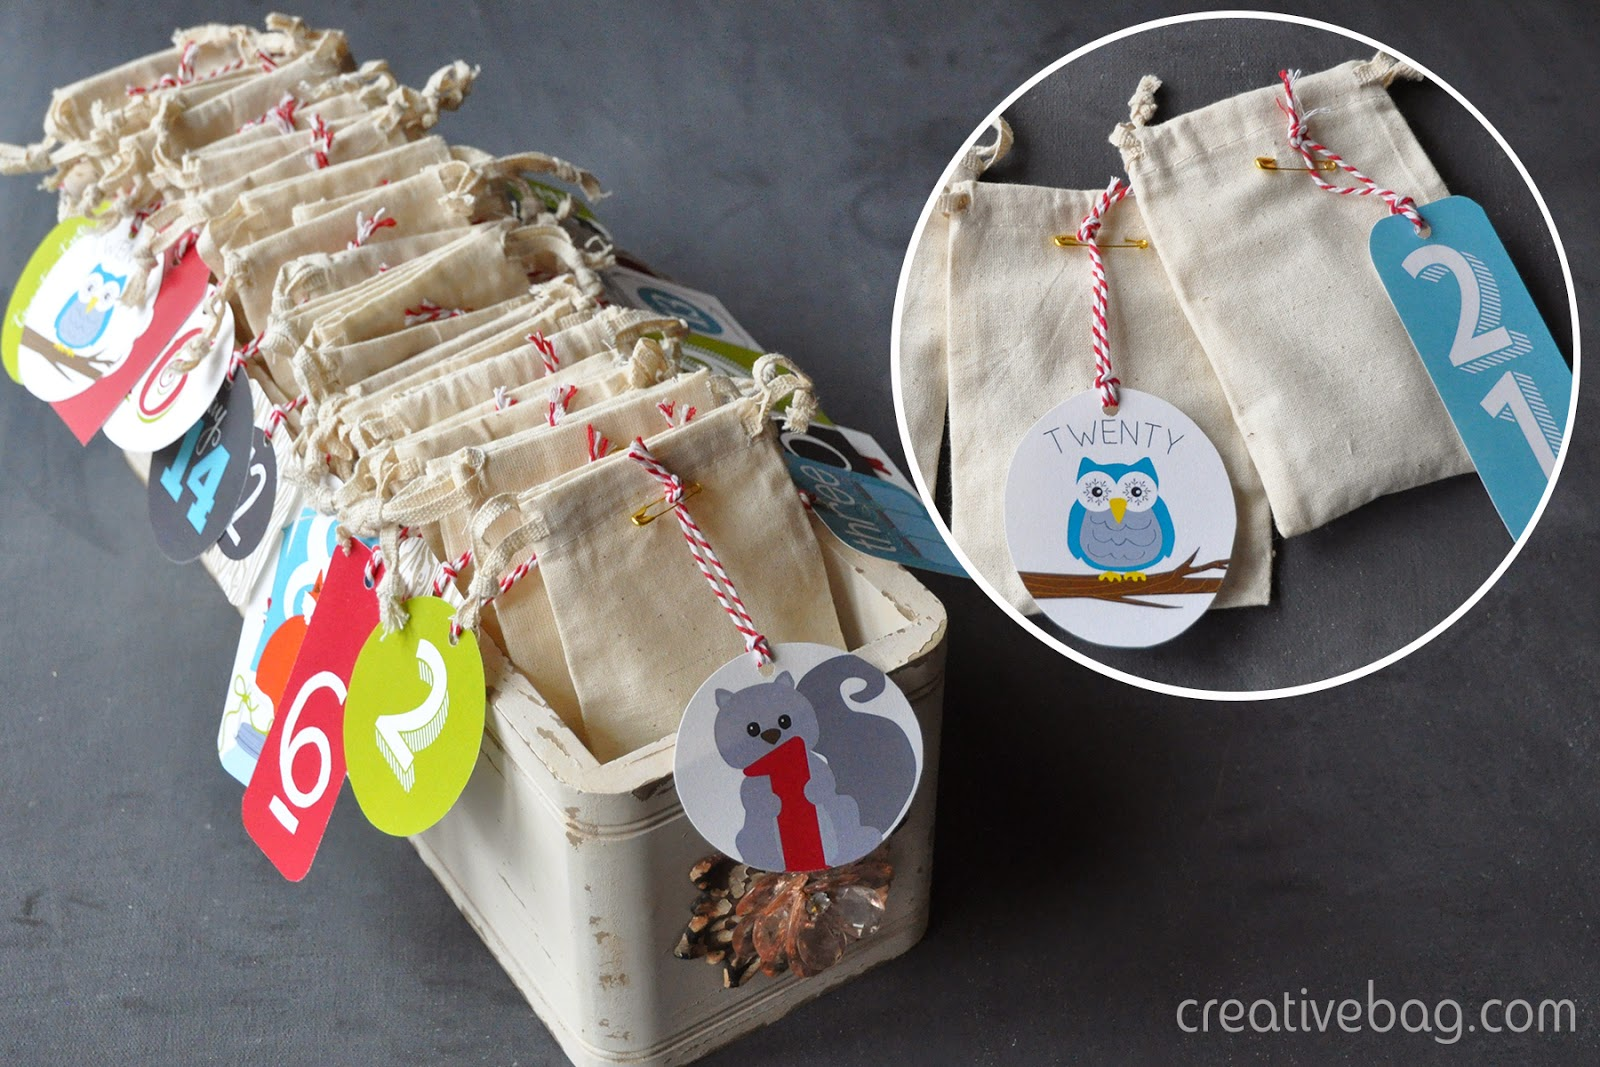 countdown to the holidays with free printables and products from Creative Bag